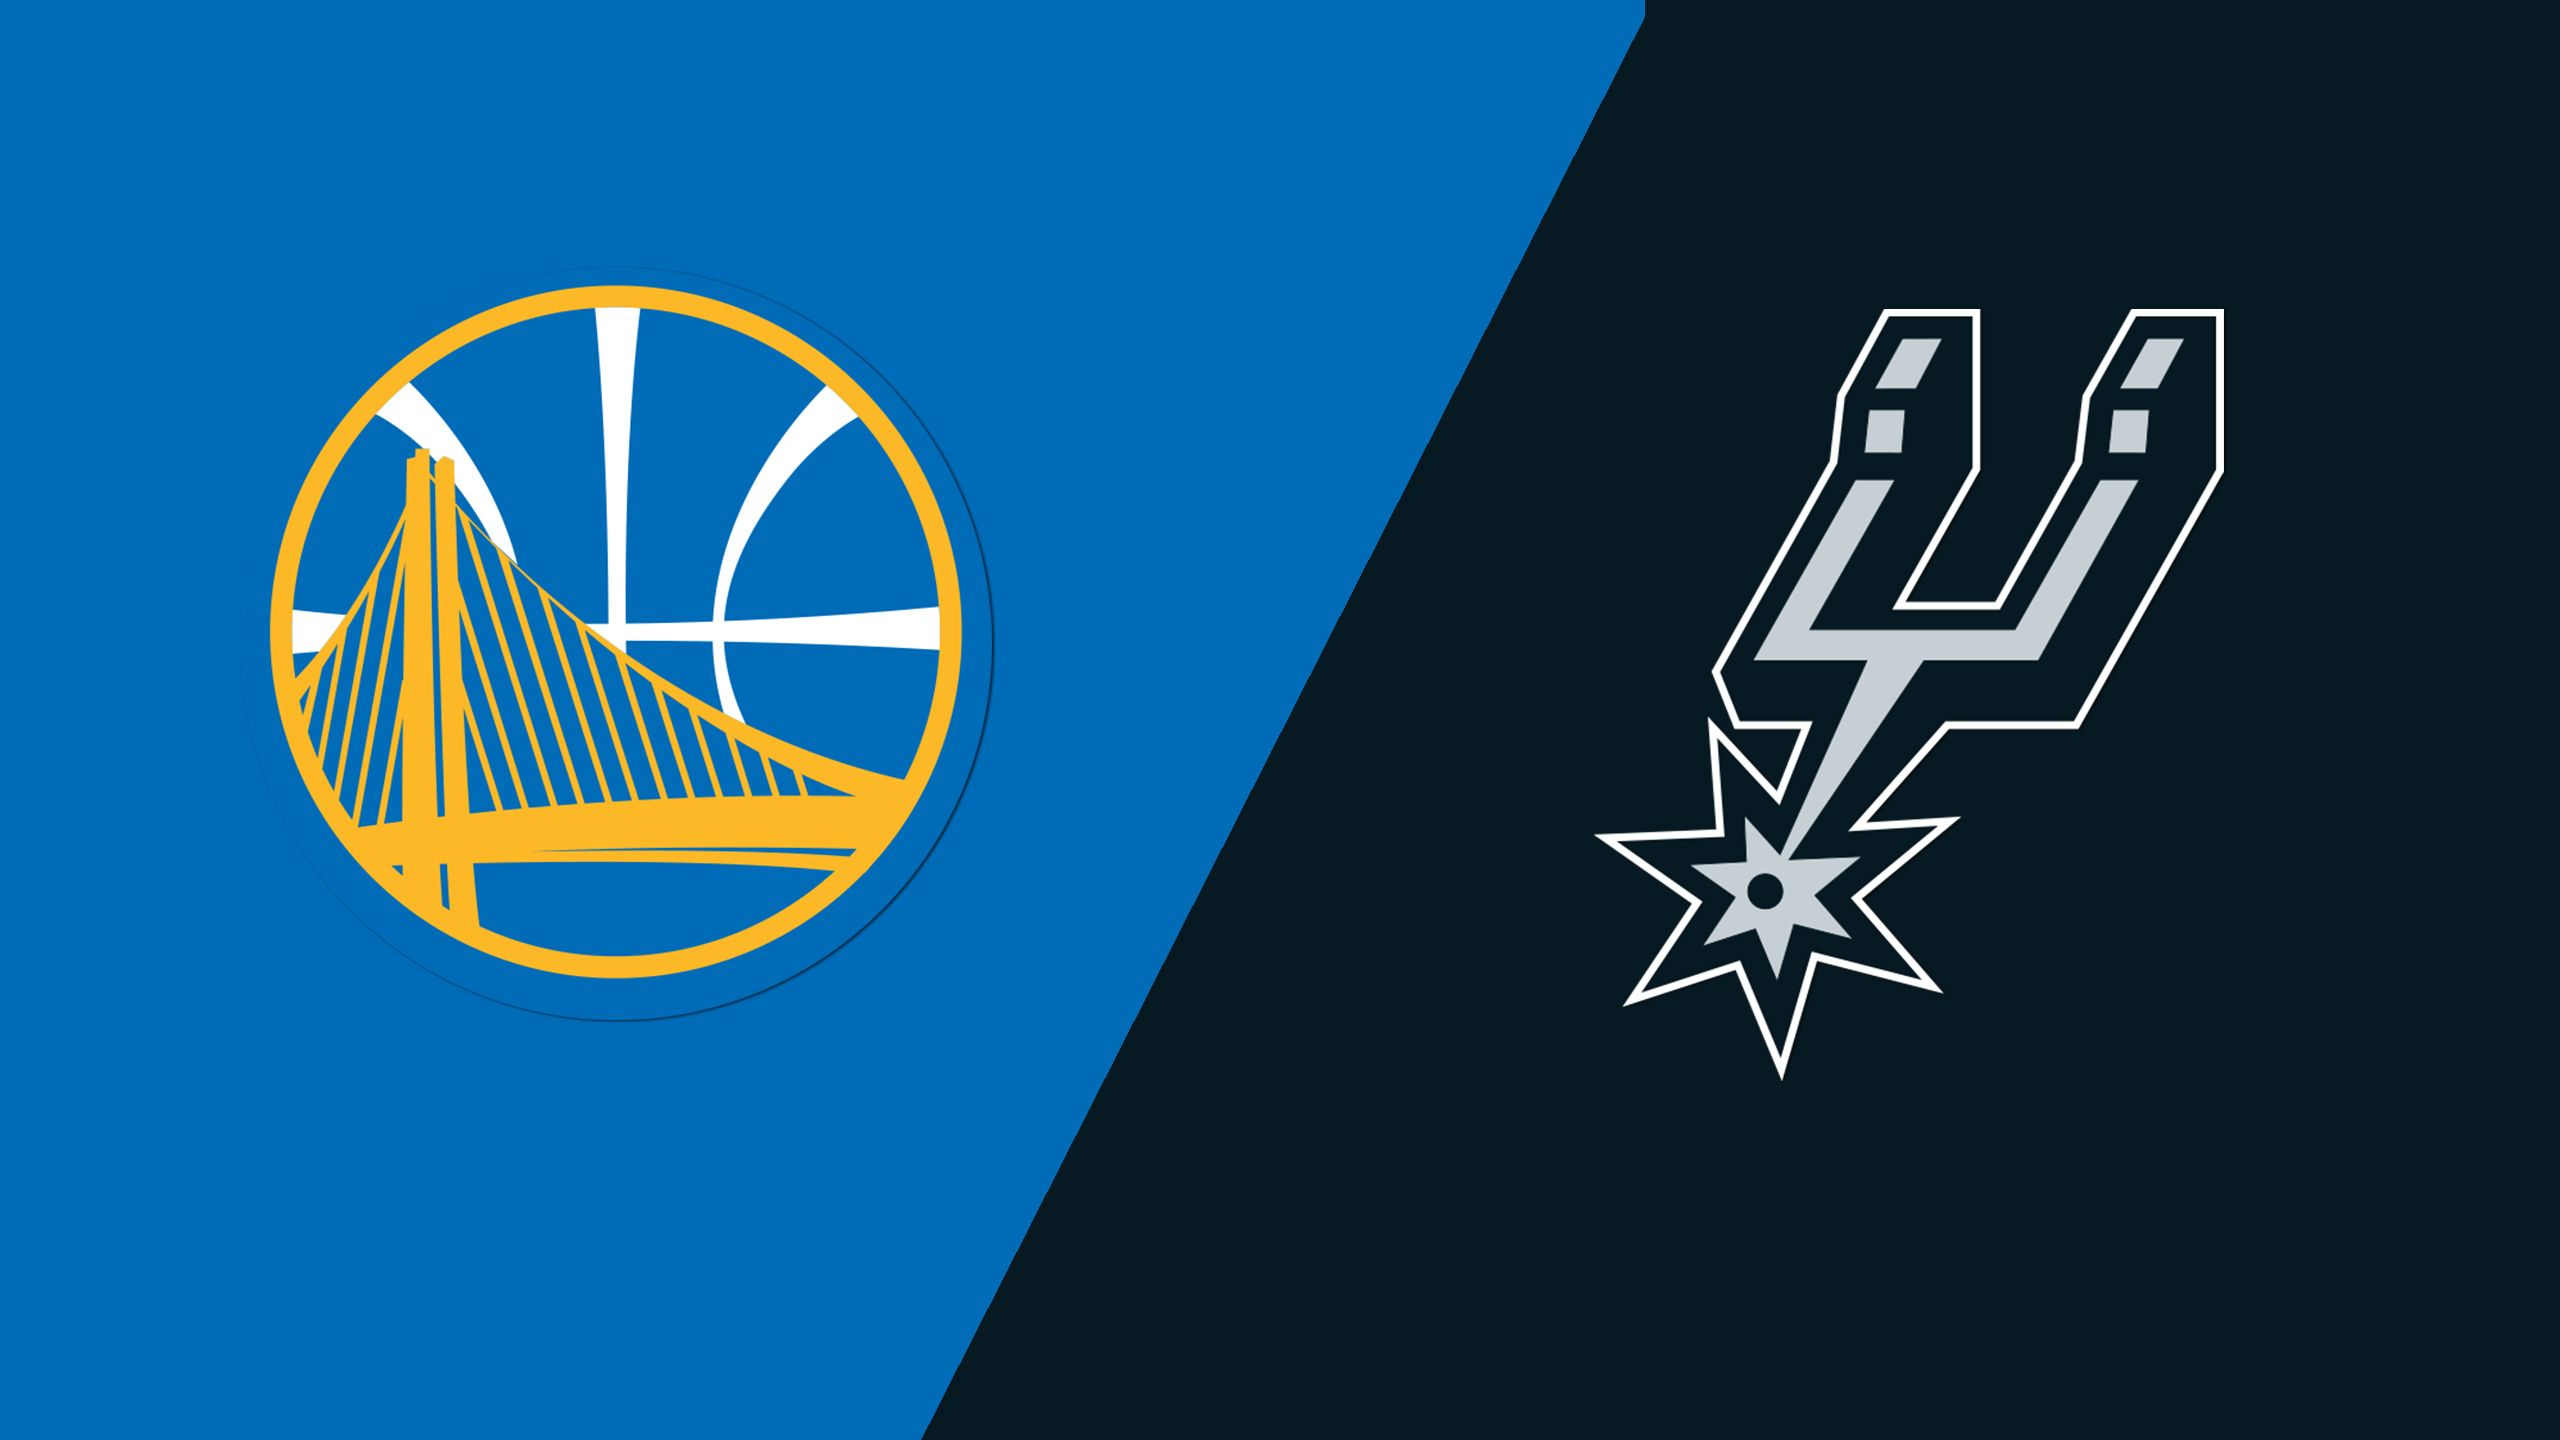 In Spanish - Golden State Warriors vs. San Antonio Spurs